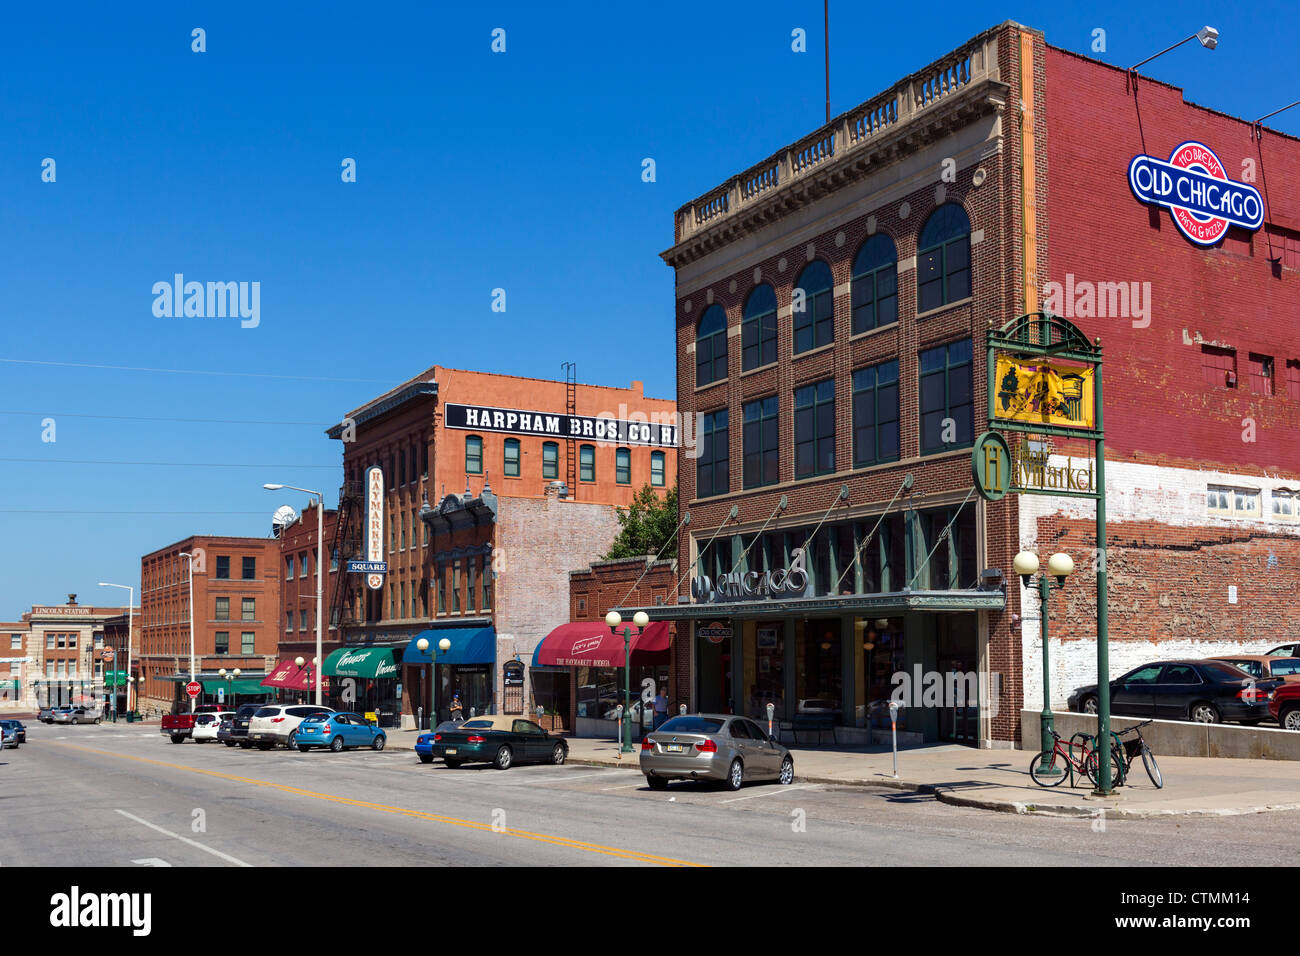 Historic buildings on P Street in the Haymarket district, Lincoln, Nebraska, USA Stock Photo